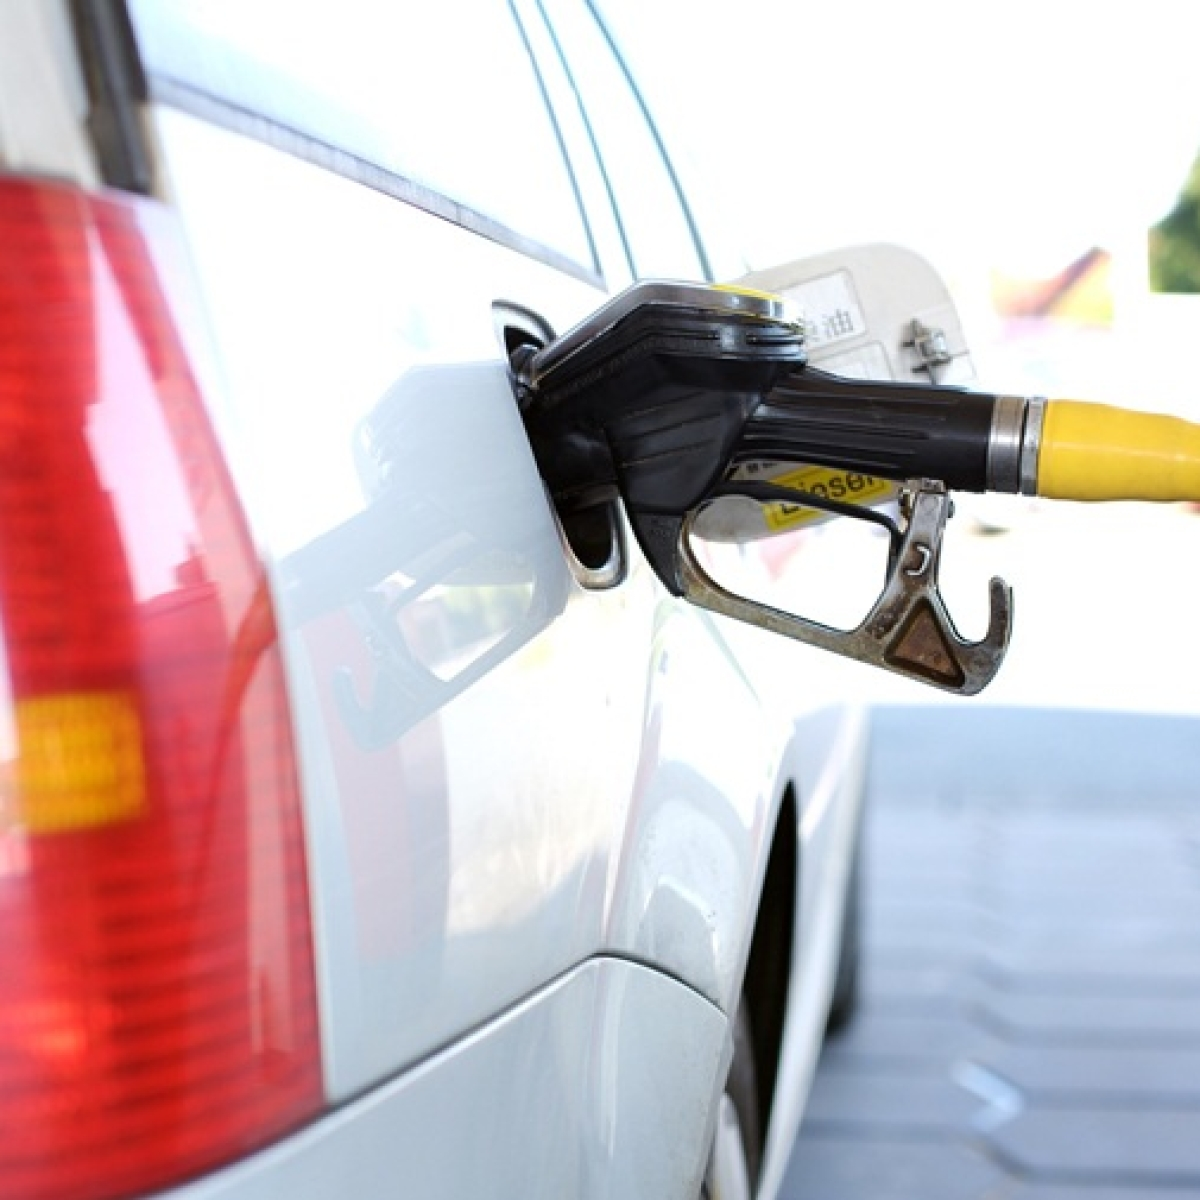 Petrol price hiked by 54 paise per litre, diesel by 58 paise for third consecutive day